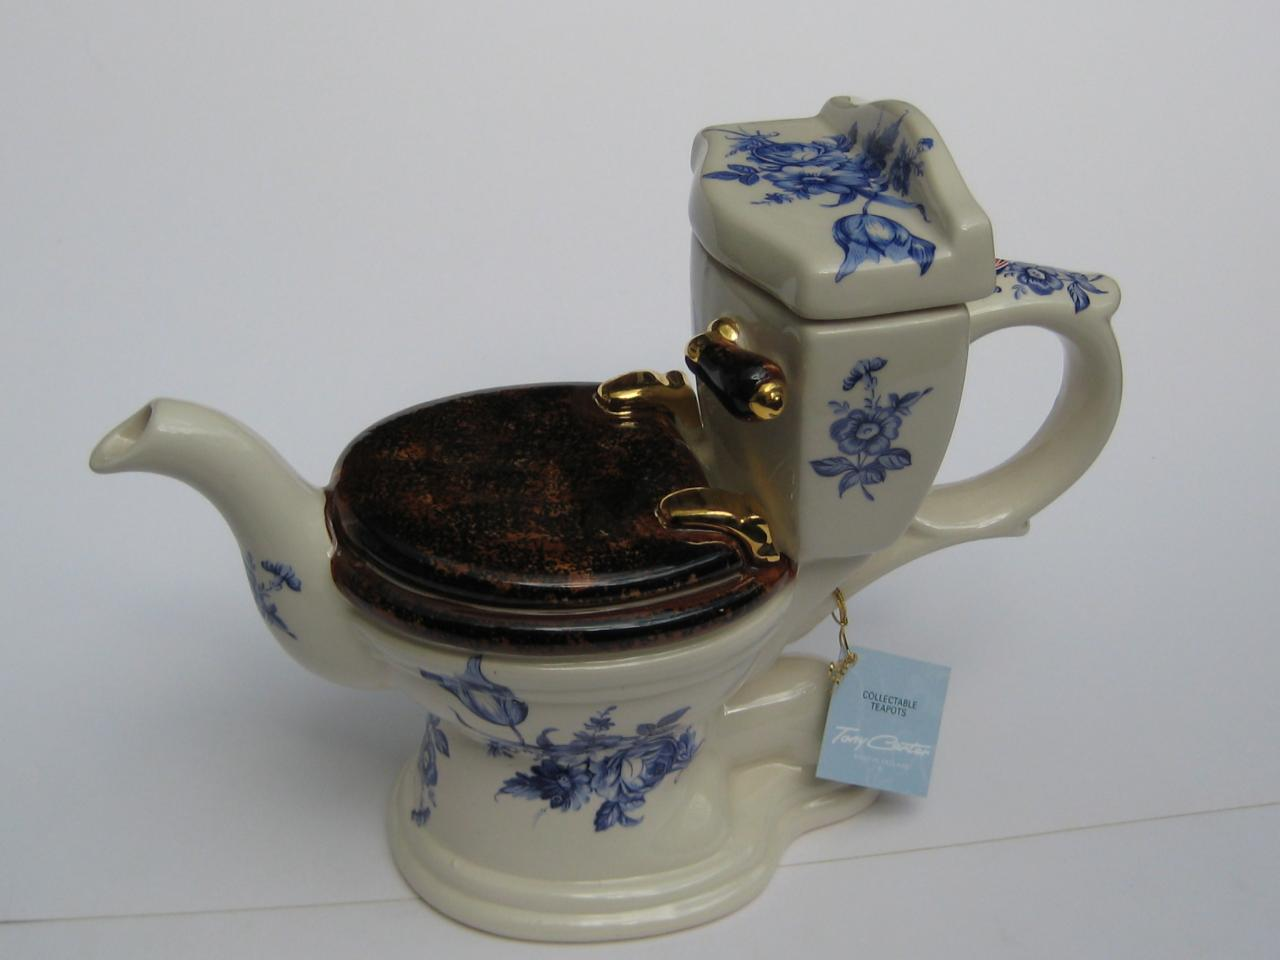 cool teapot ideas images galleries